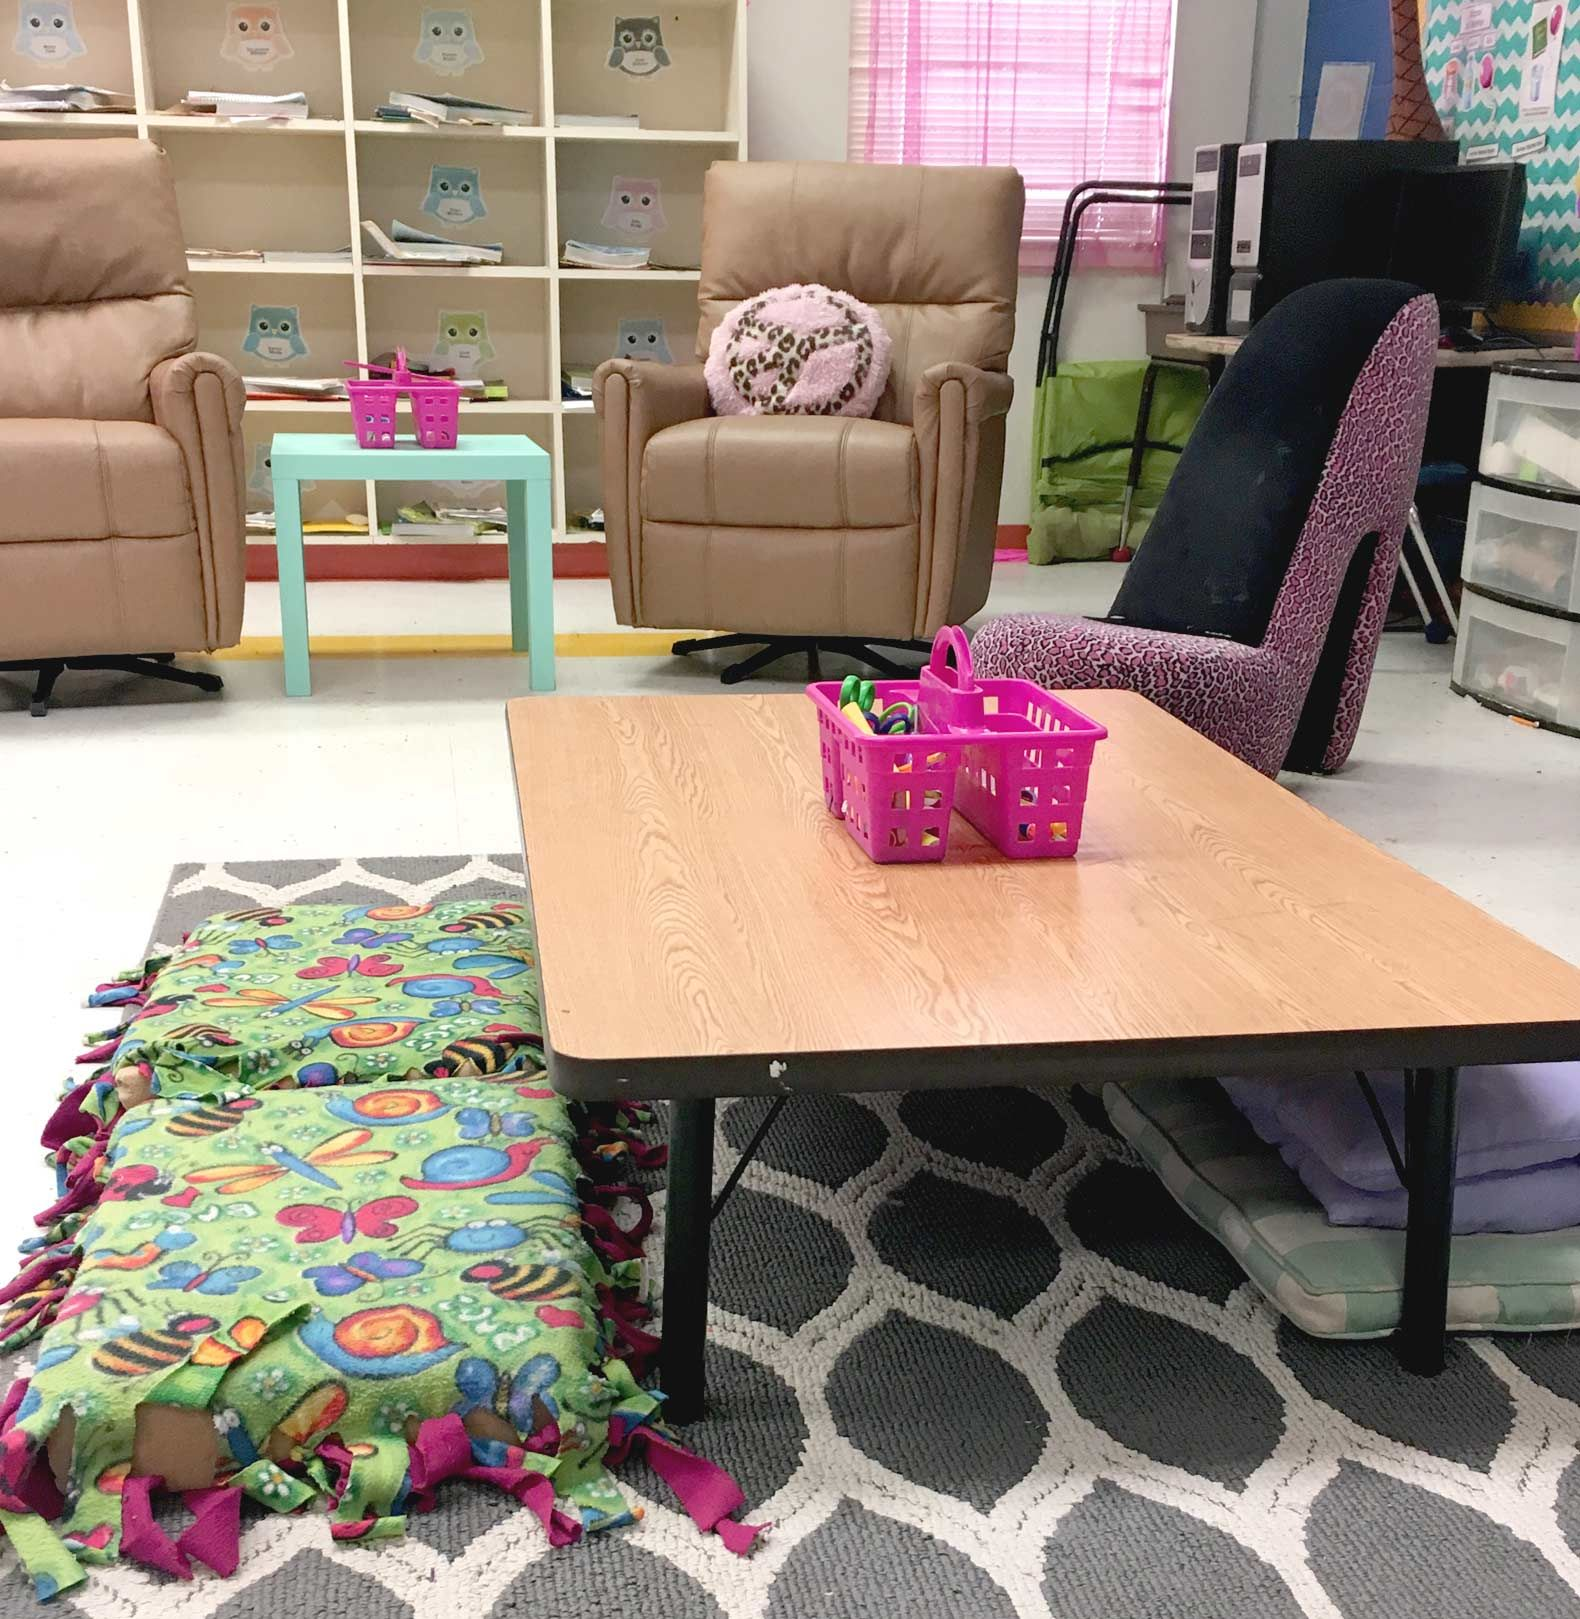 Dudley cut off the legs on one of her tables to create a low seating option—the DIY approach is common in flexible classrooms.